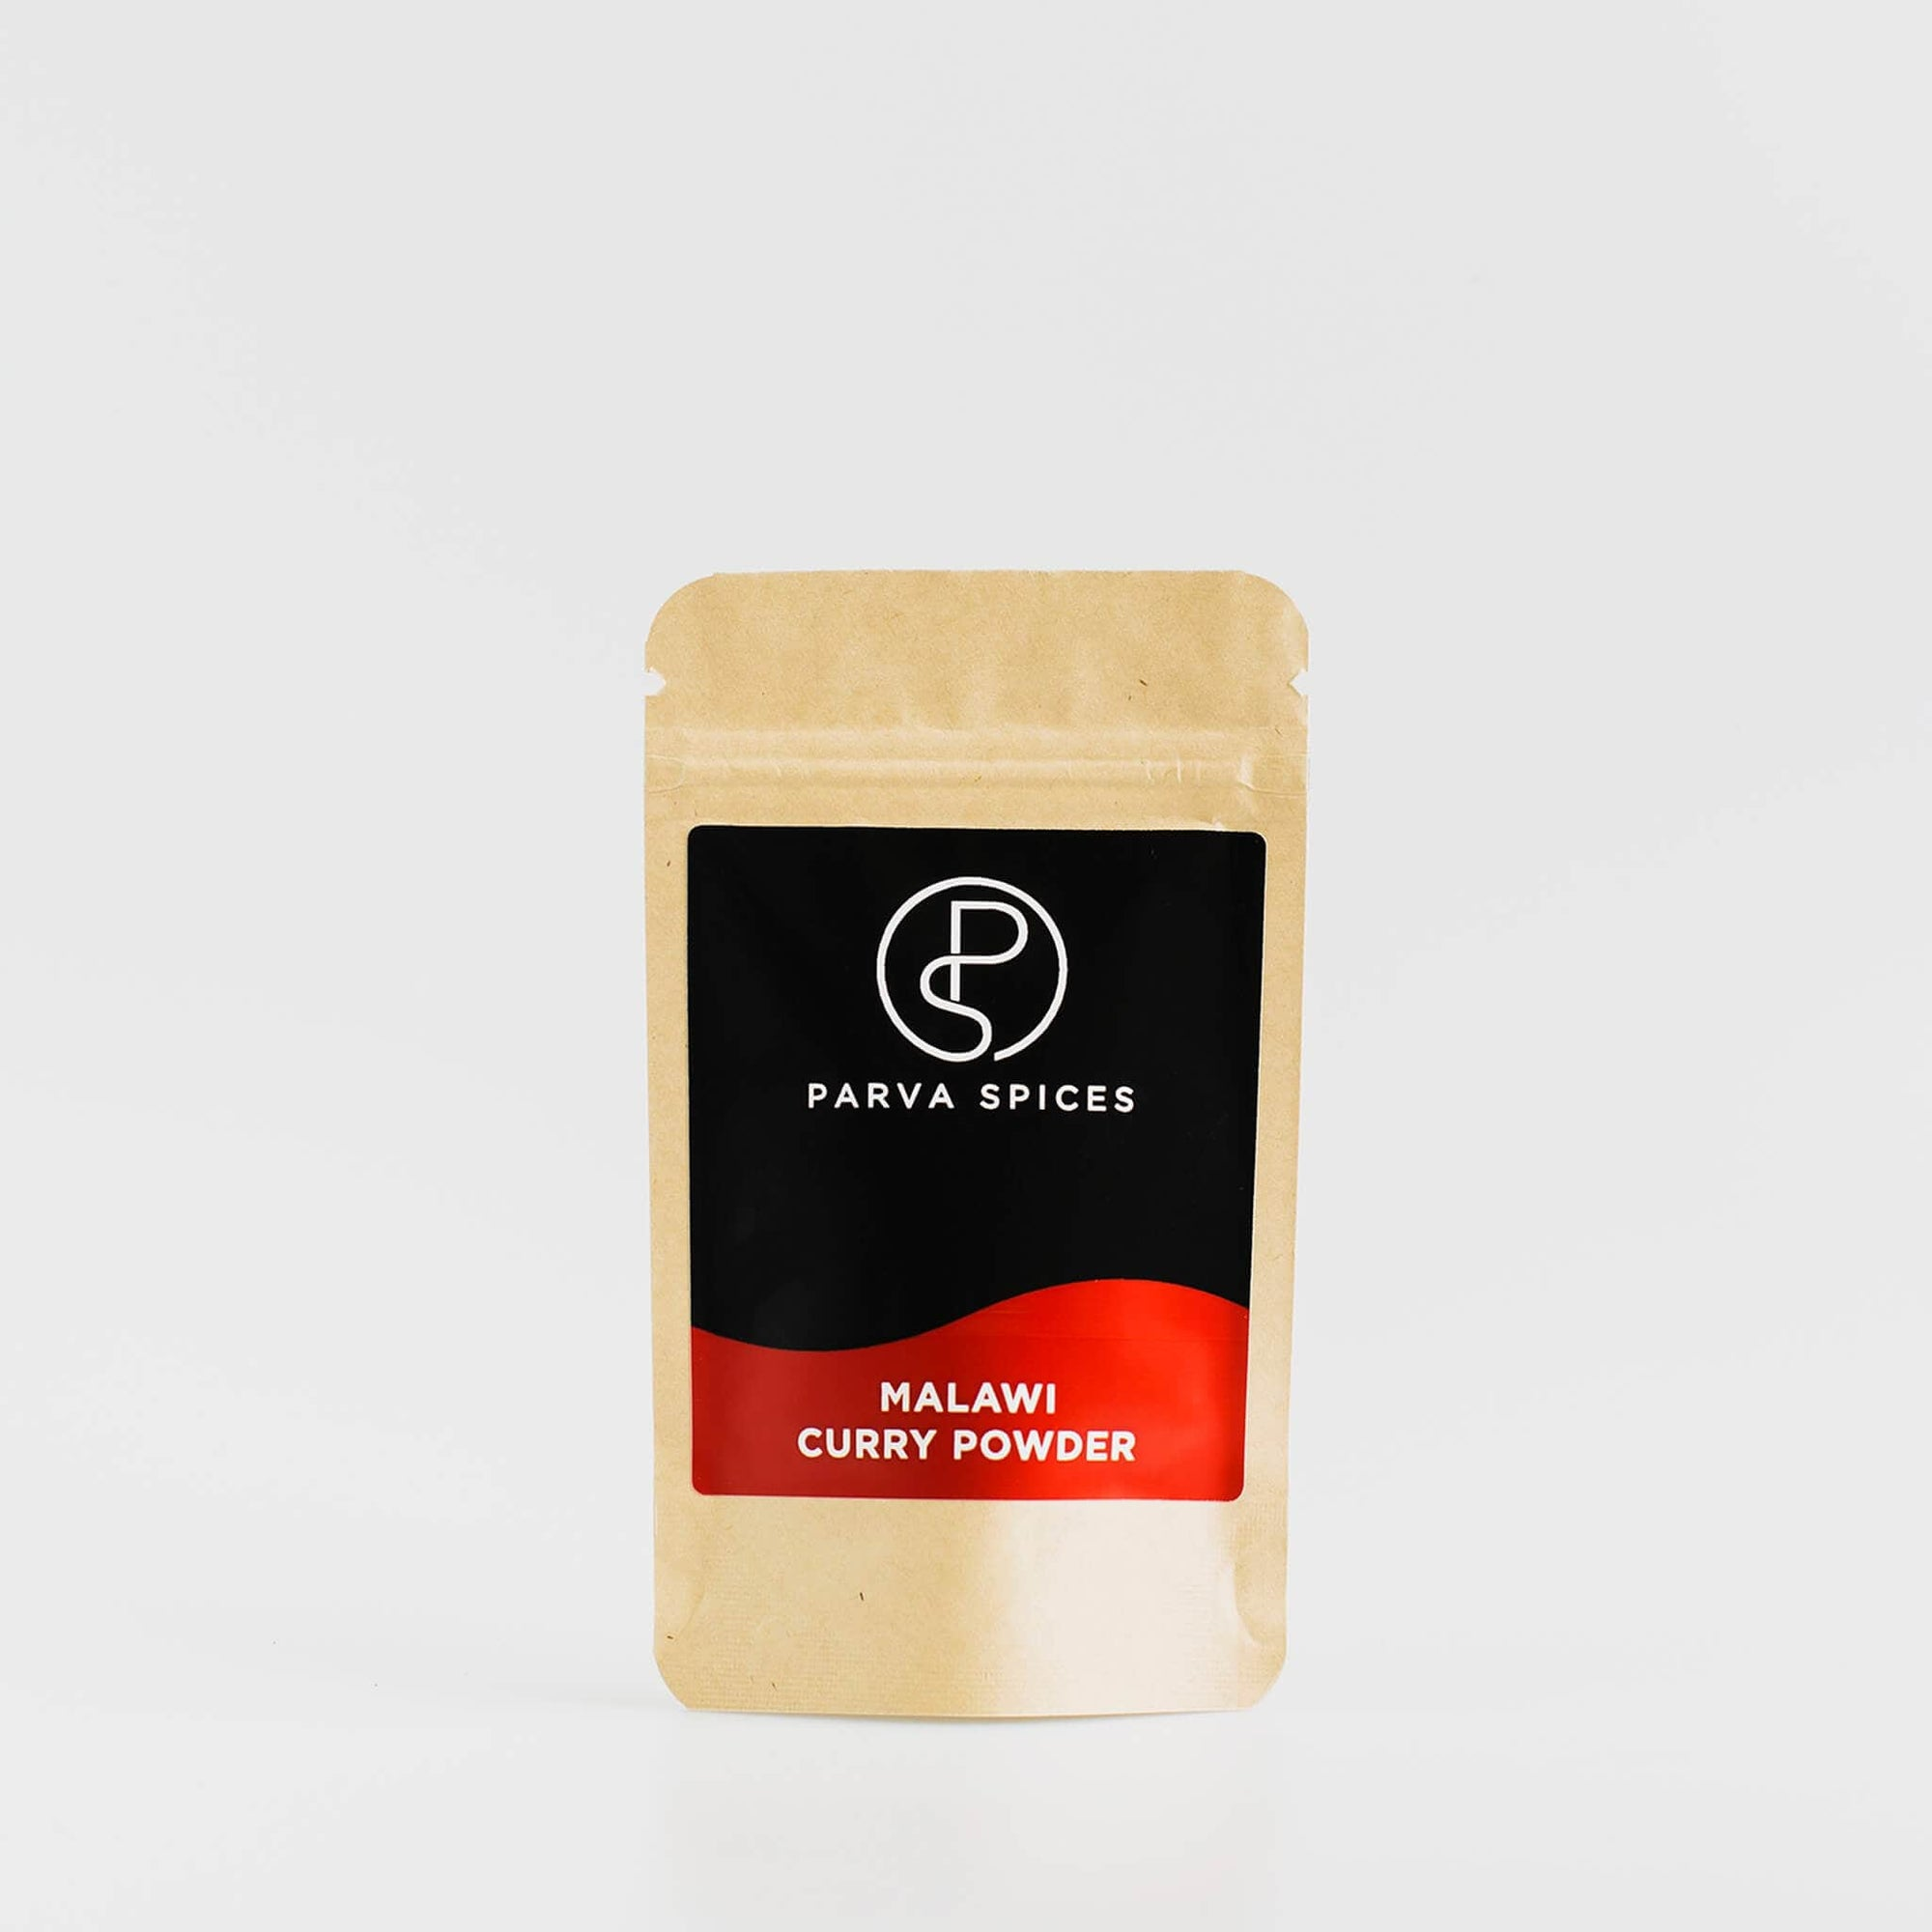 Malawi Curry Powder